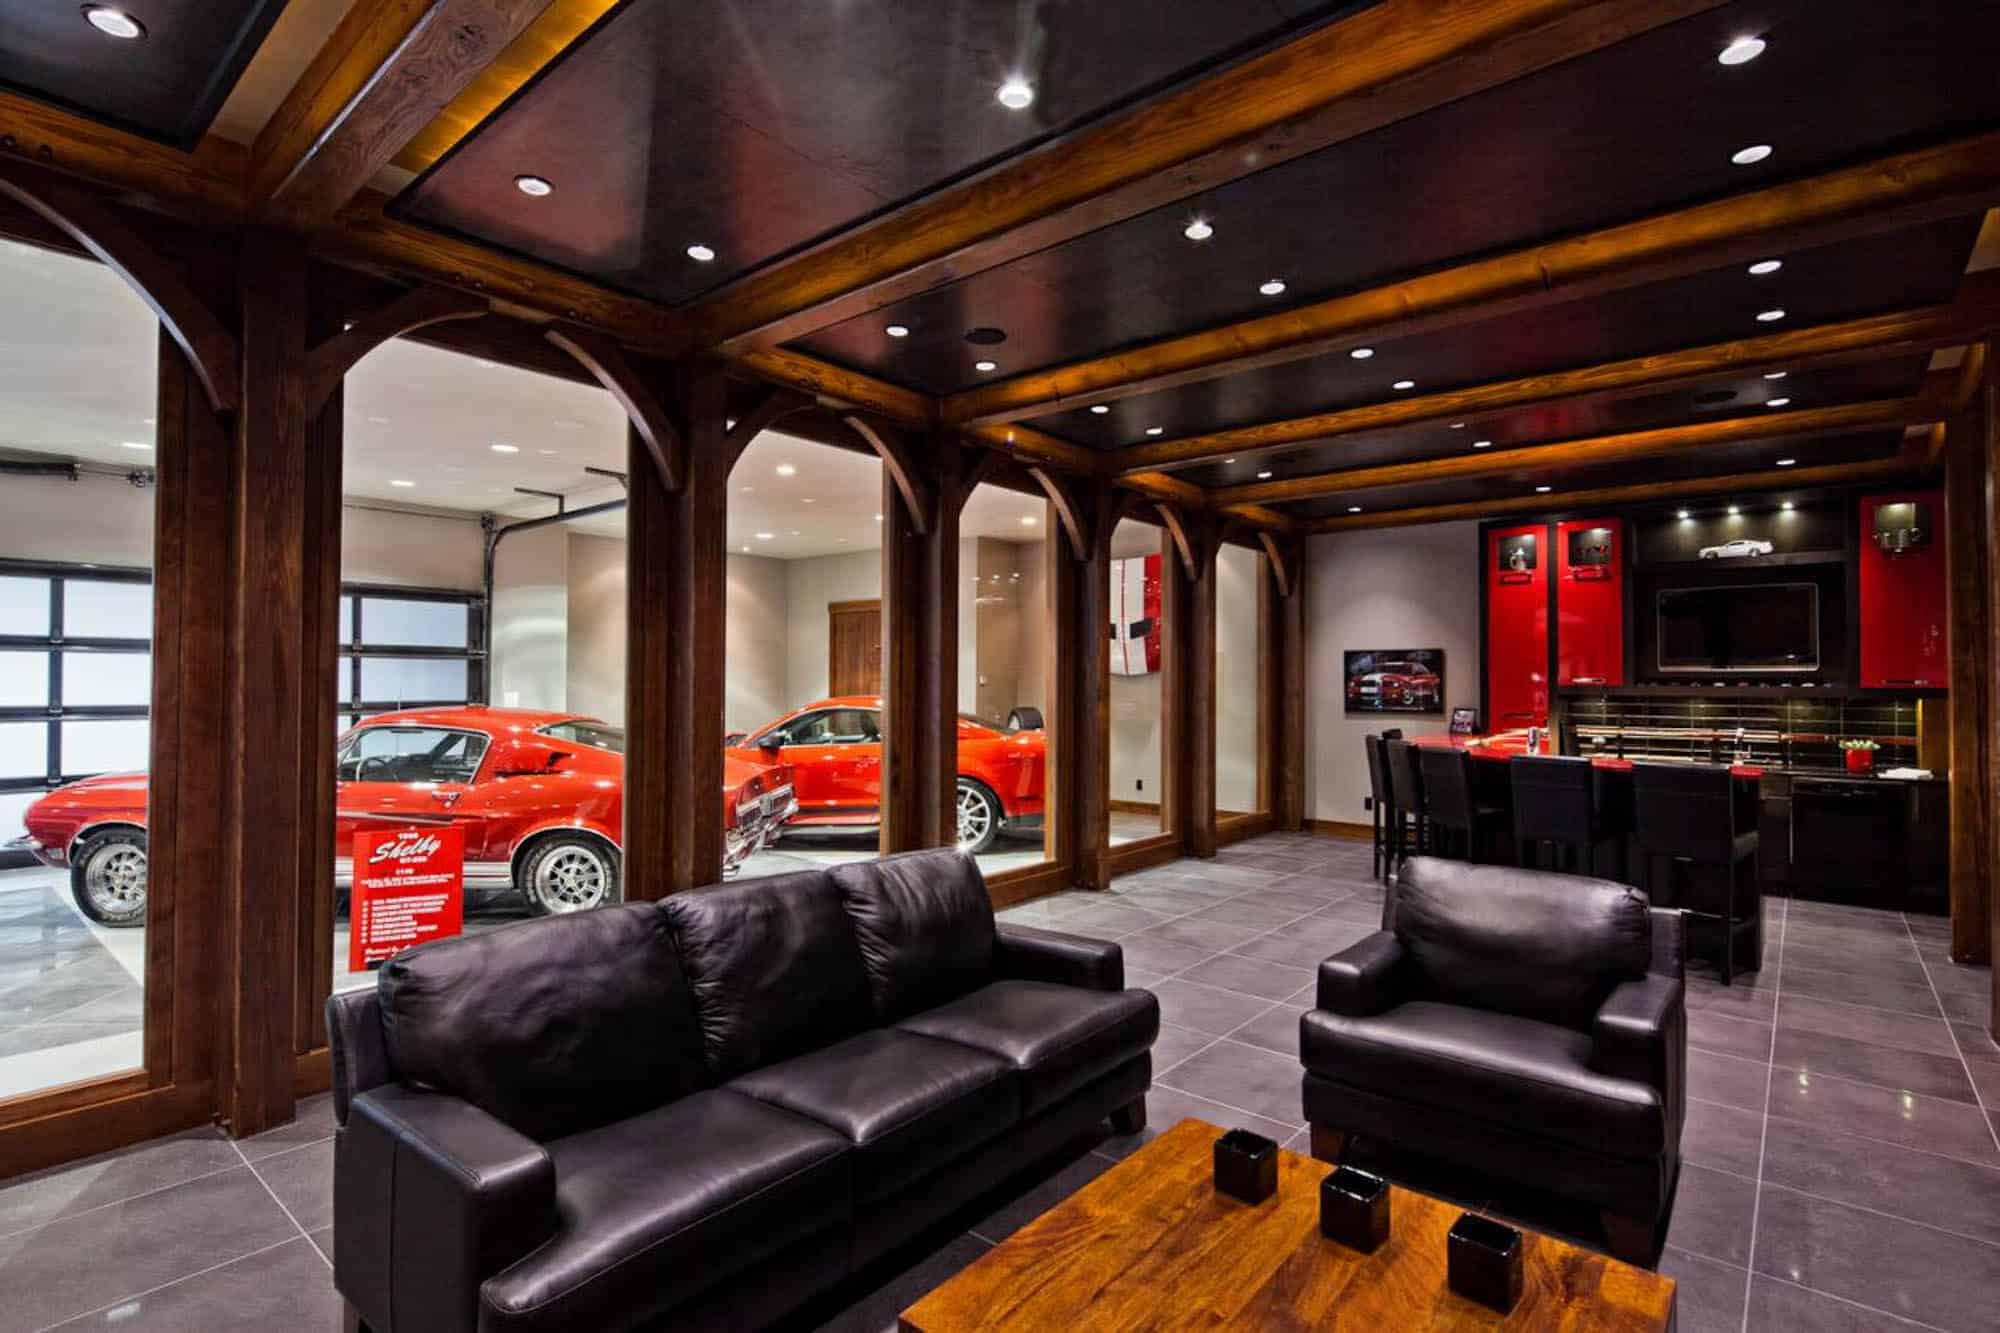 The car lovers man cave